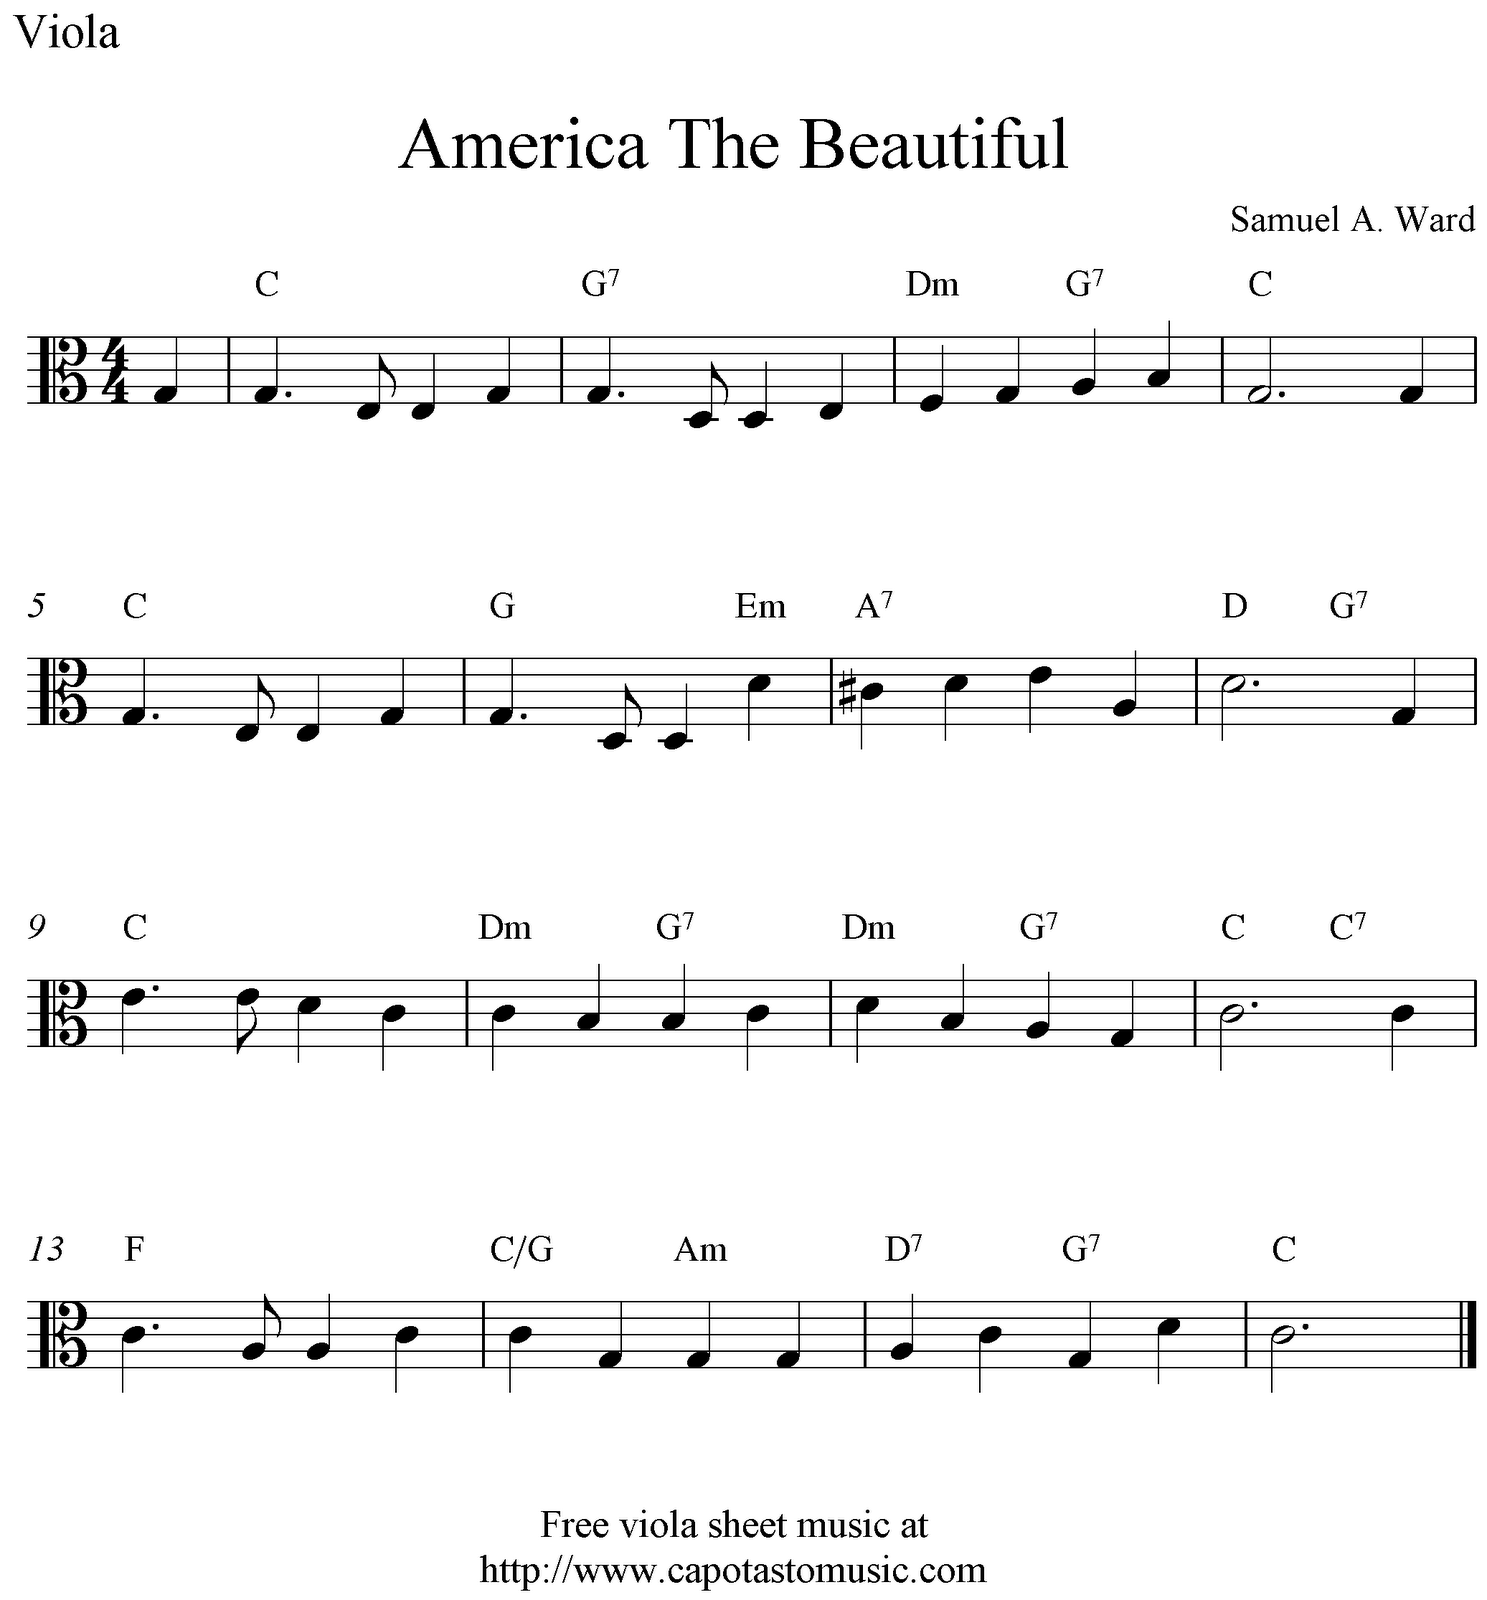 Free viola sheet music, America The Beautiful